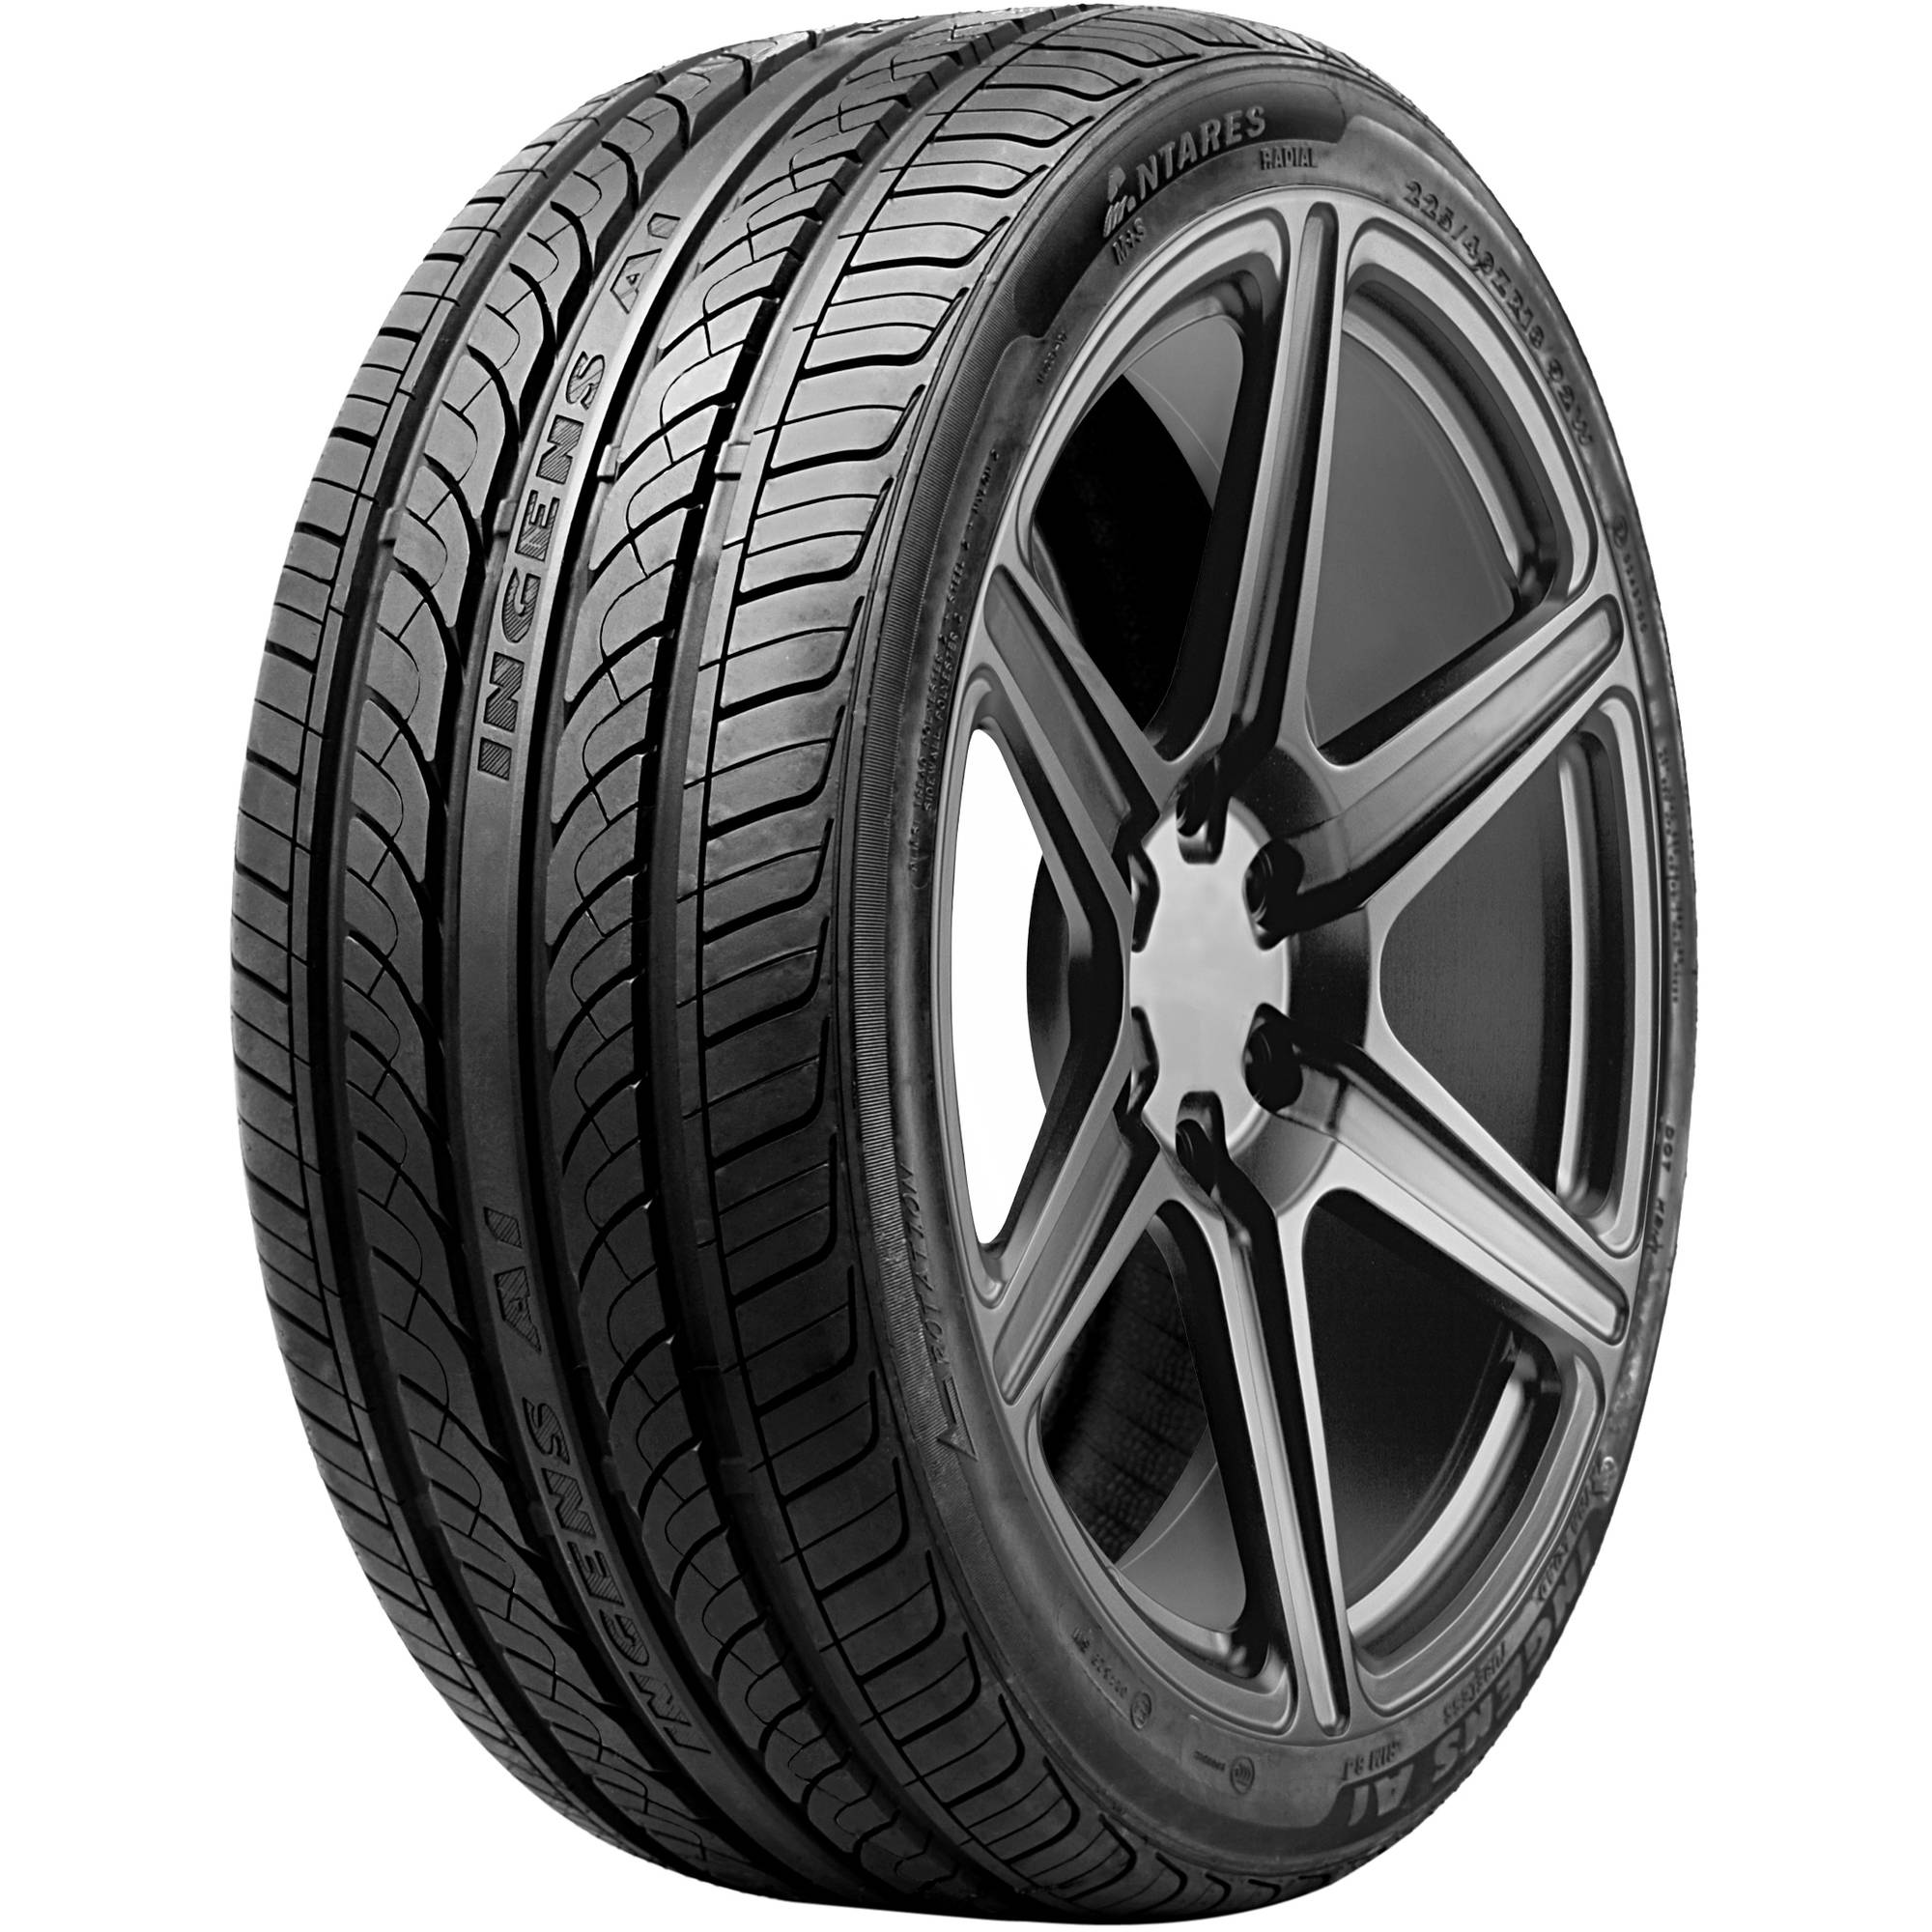 Antares Ingens A1 185 65R14 86H Tires by Antares